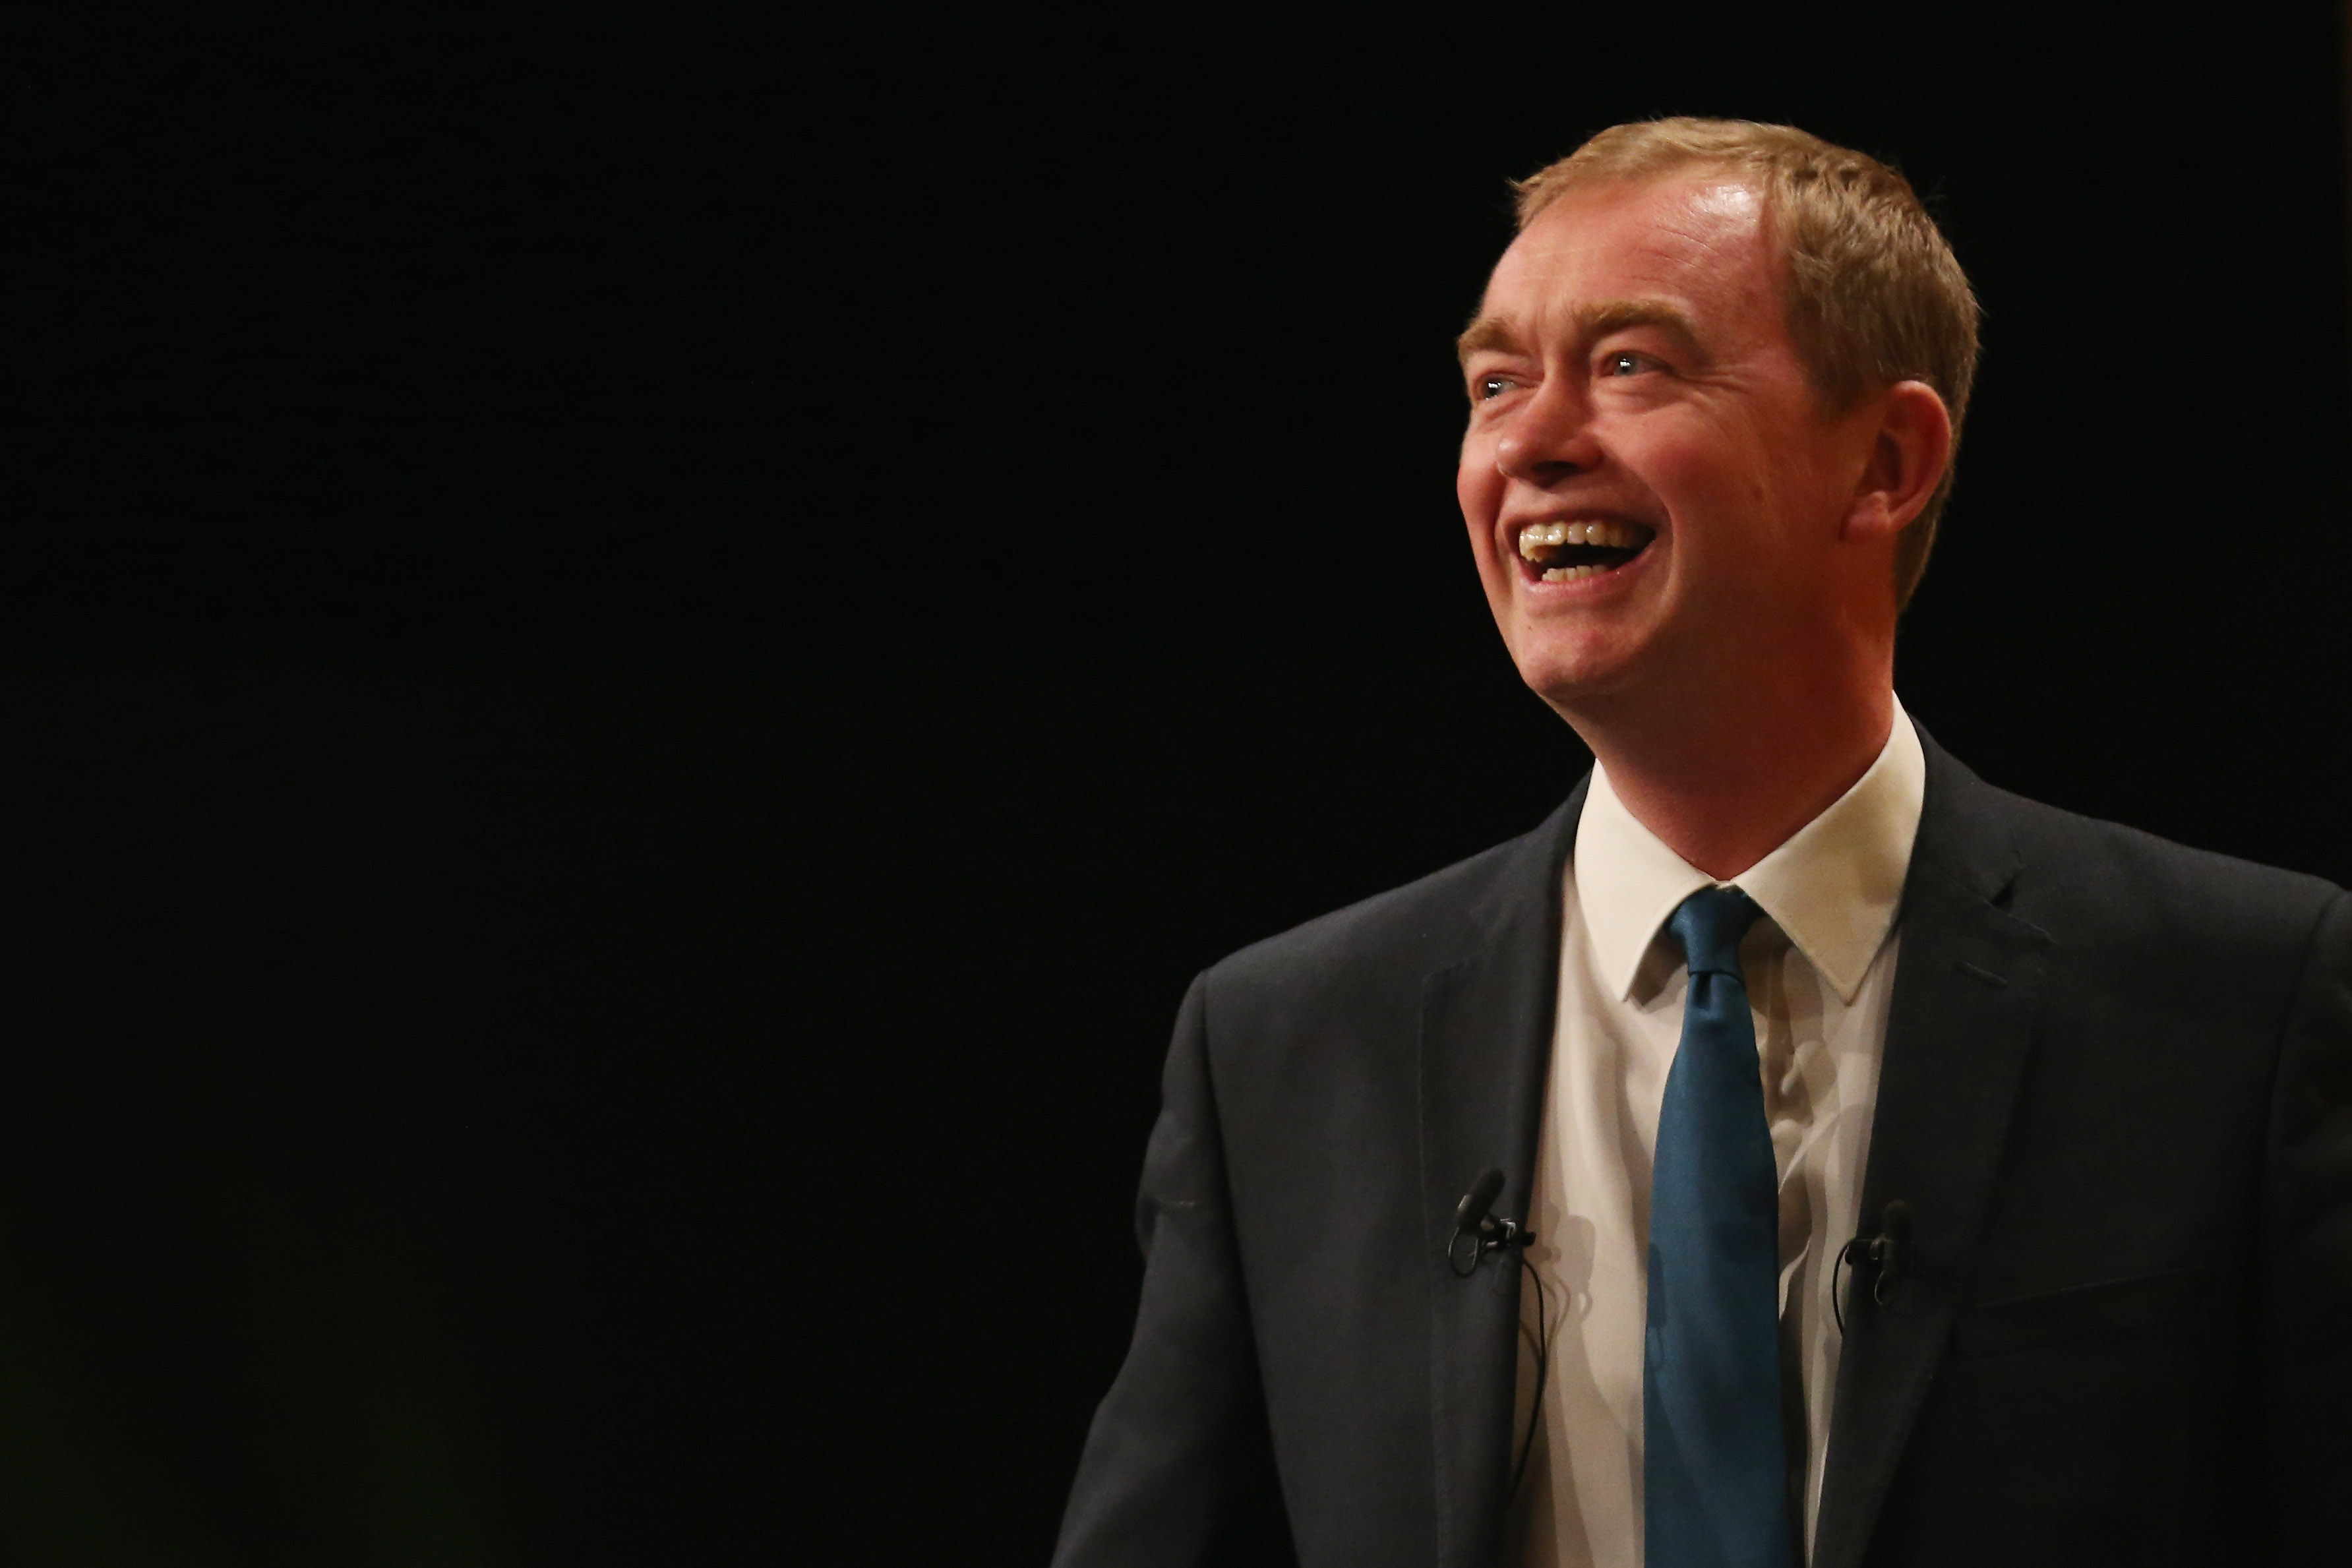 Liberal Democrat leader Tim Farron delivers his keynote speech to delgates during the Liberal Democrats spring conference at York Barbican in York, England, on March 13, 2016.